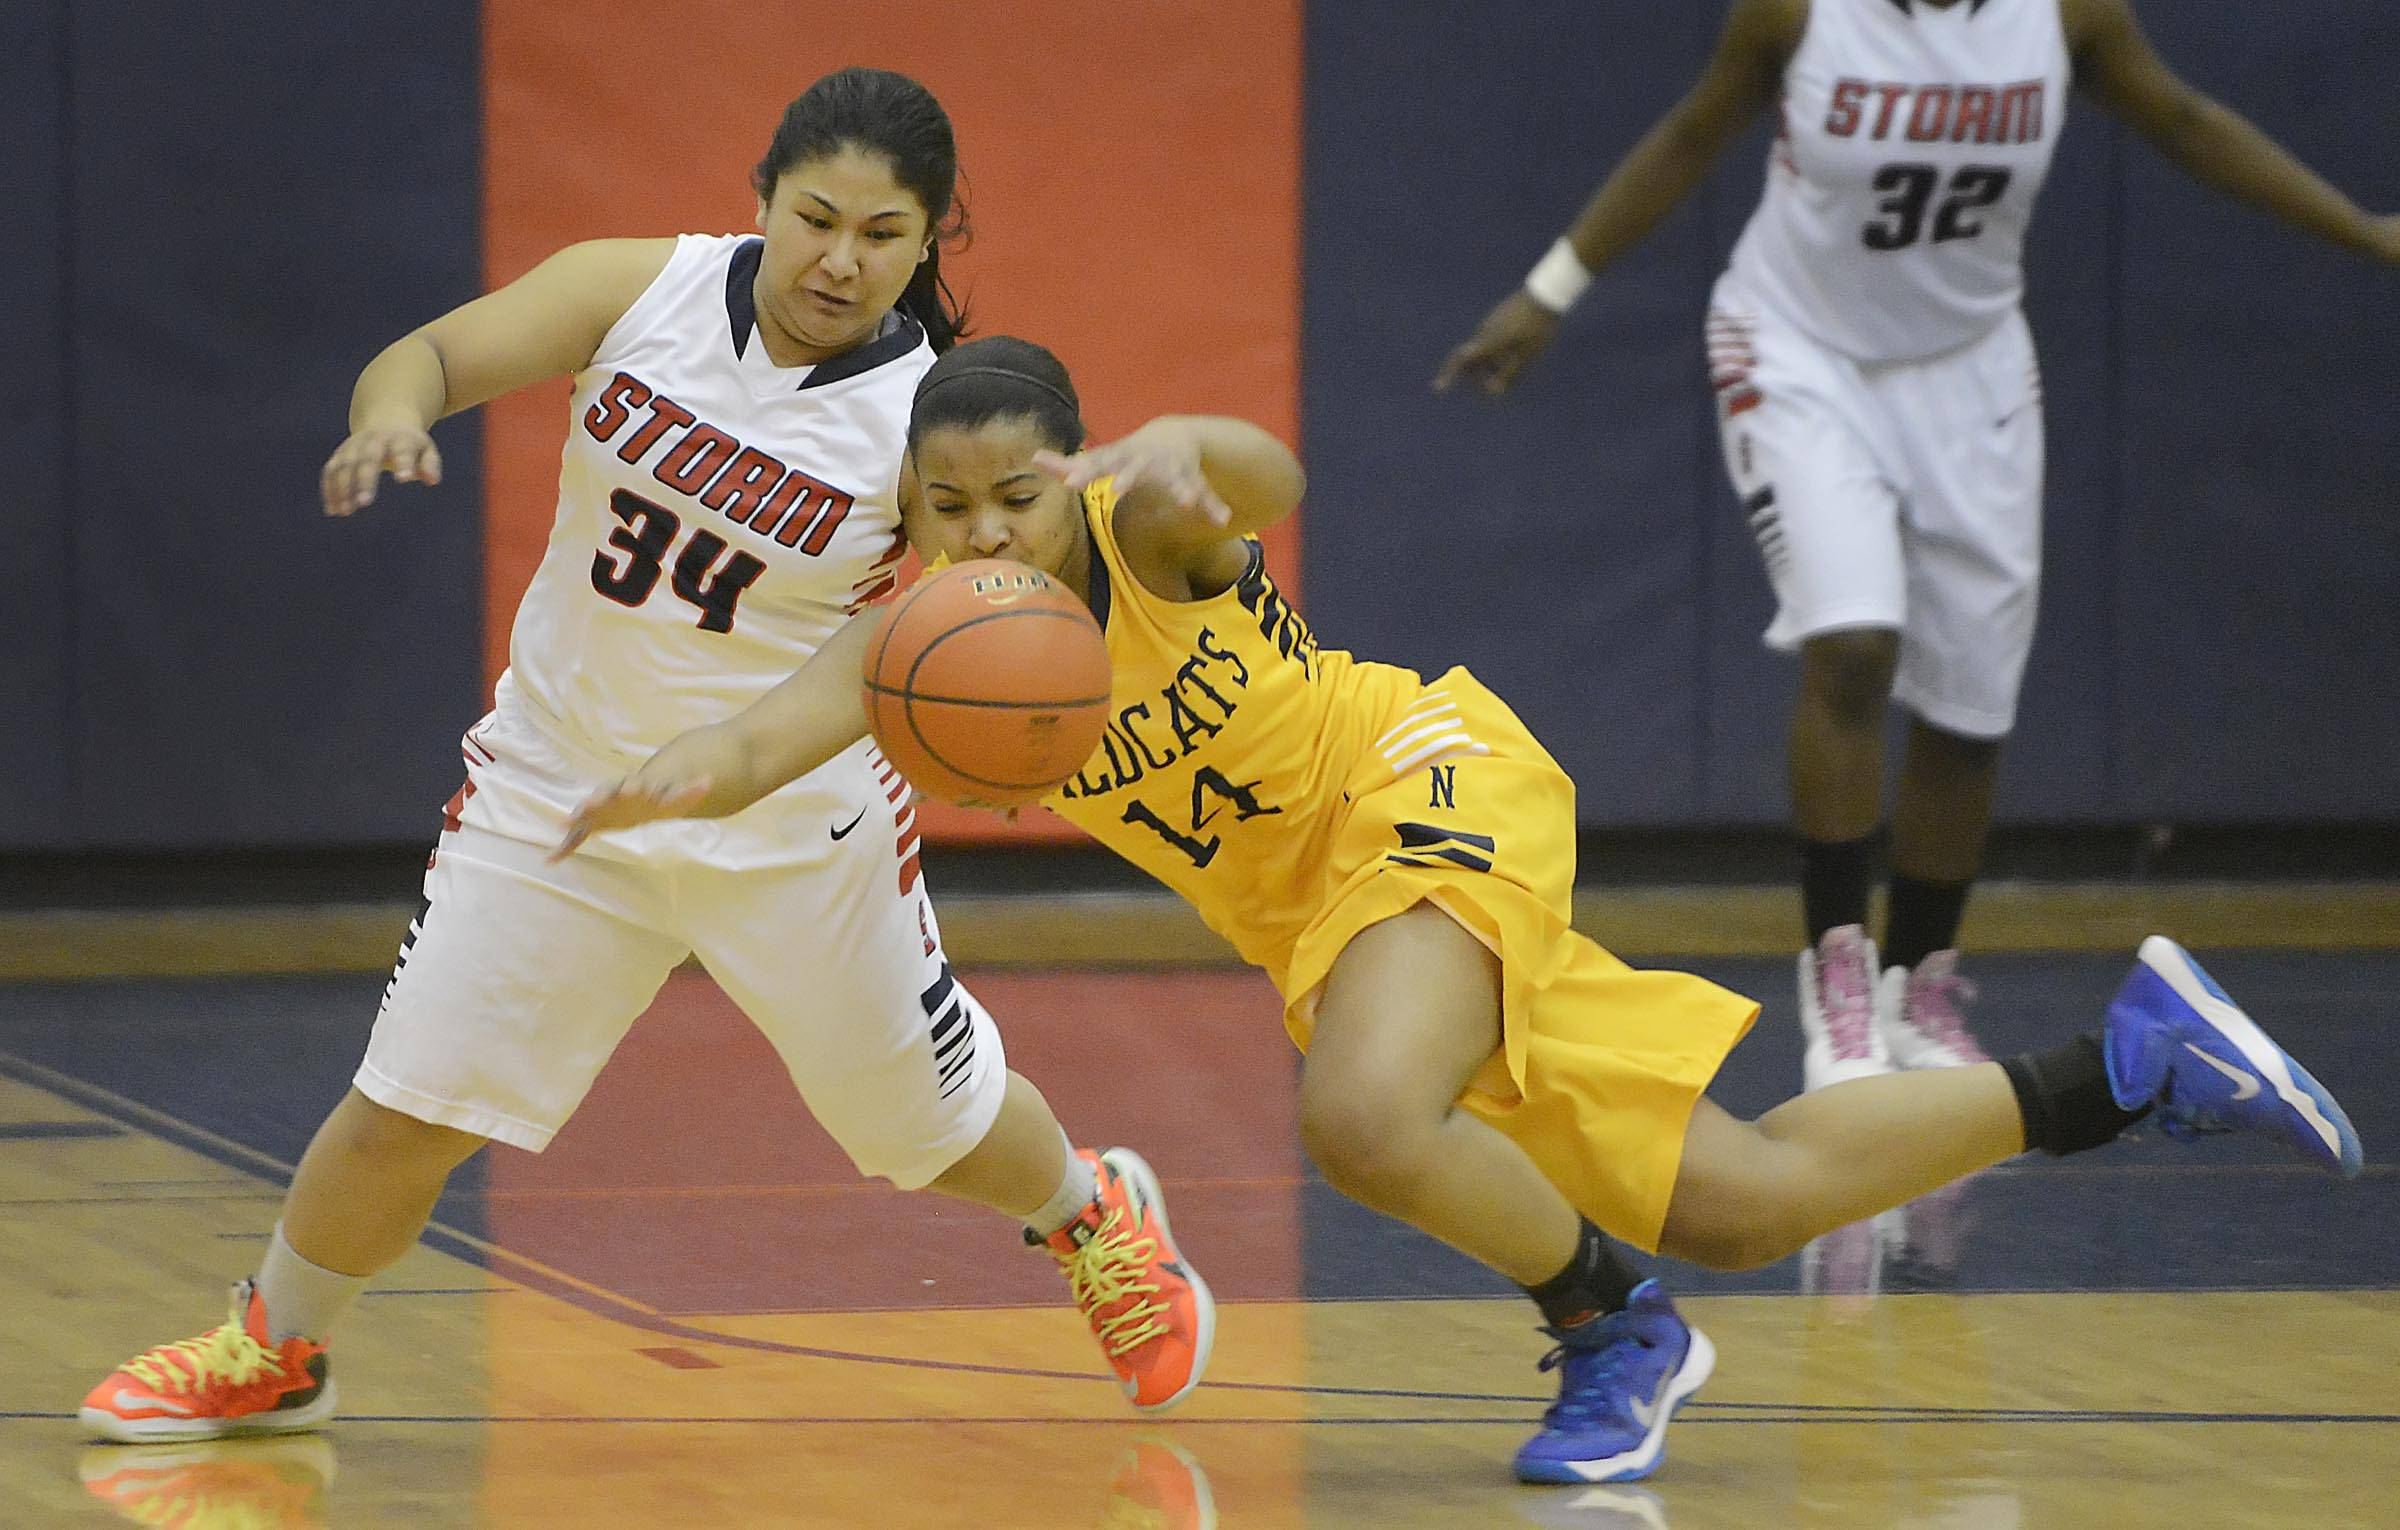 Neuqua Valley's Najee Smith falls as South Elgin's Nadia Yang defends Monday in South Elgin.